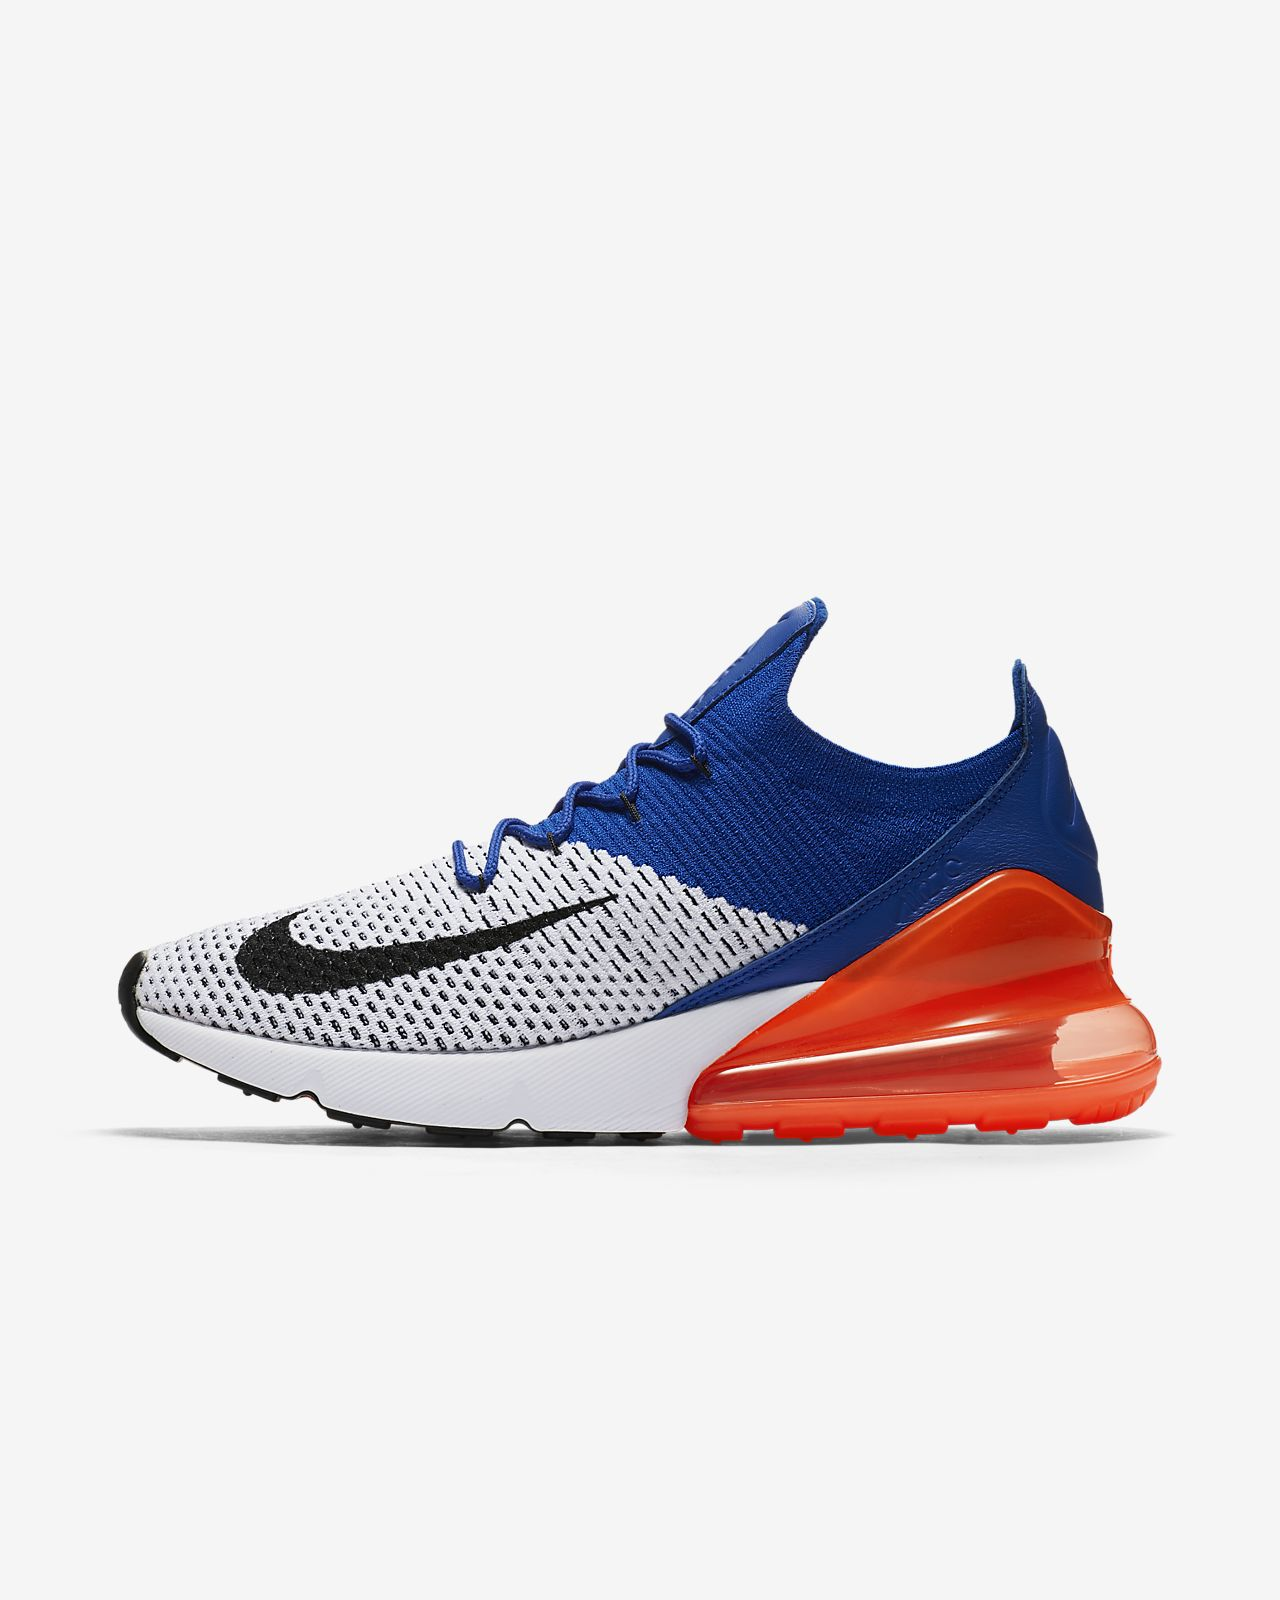 Super beliebt Andere Original Nike Air Max 270 Flyknit